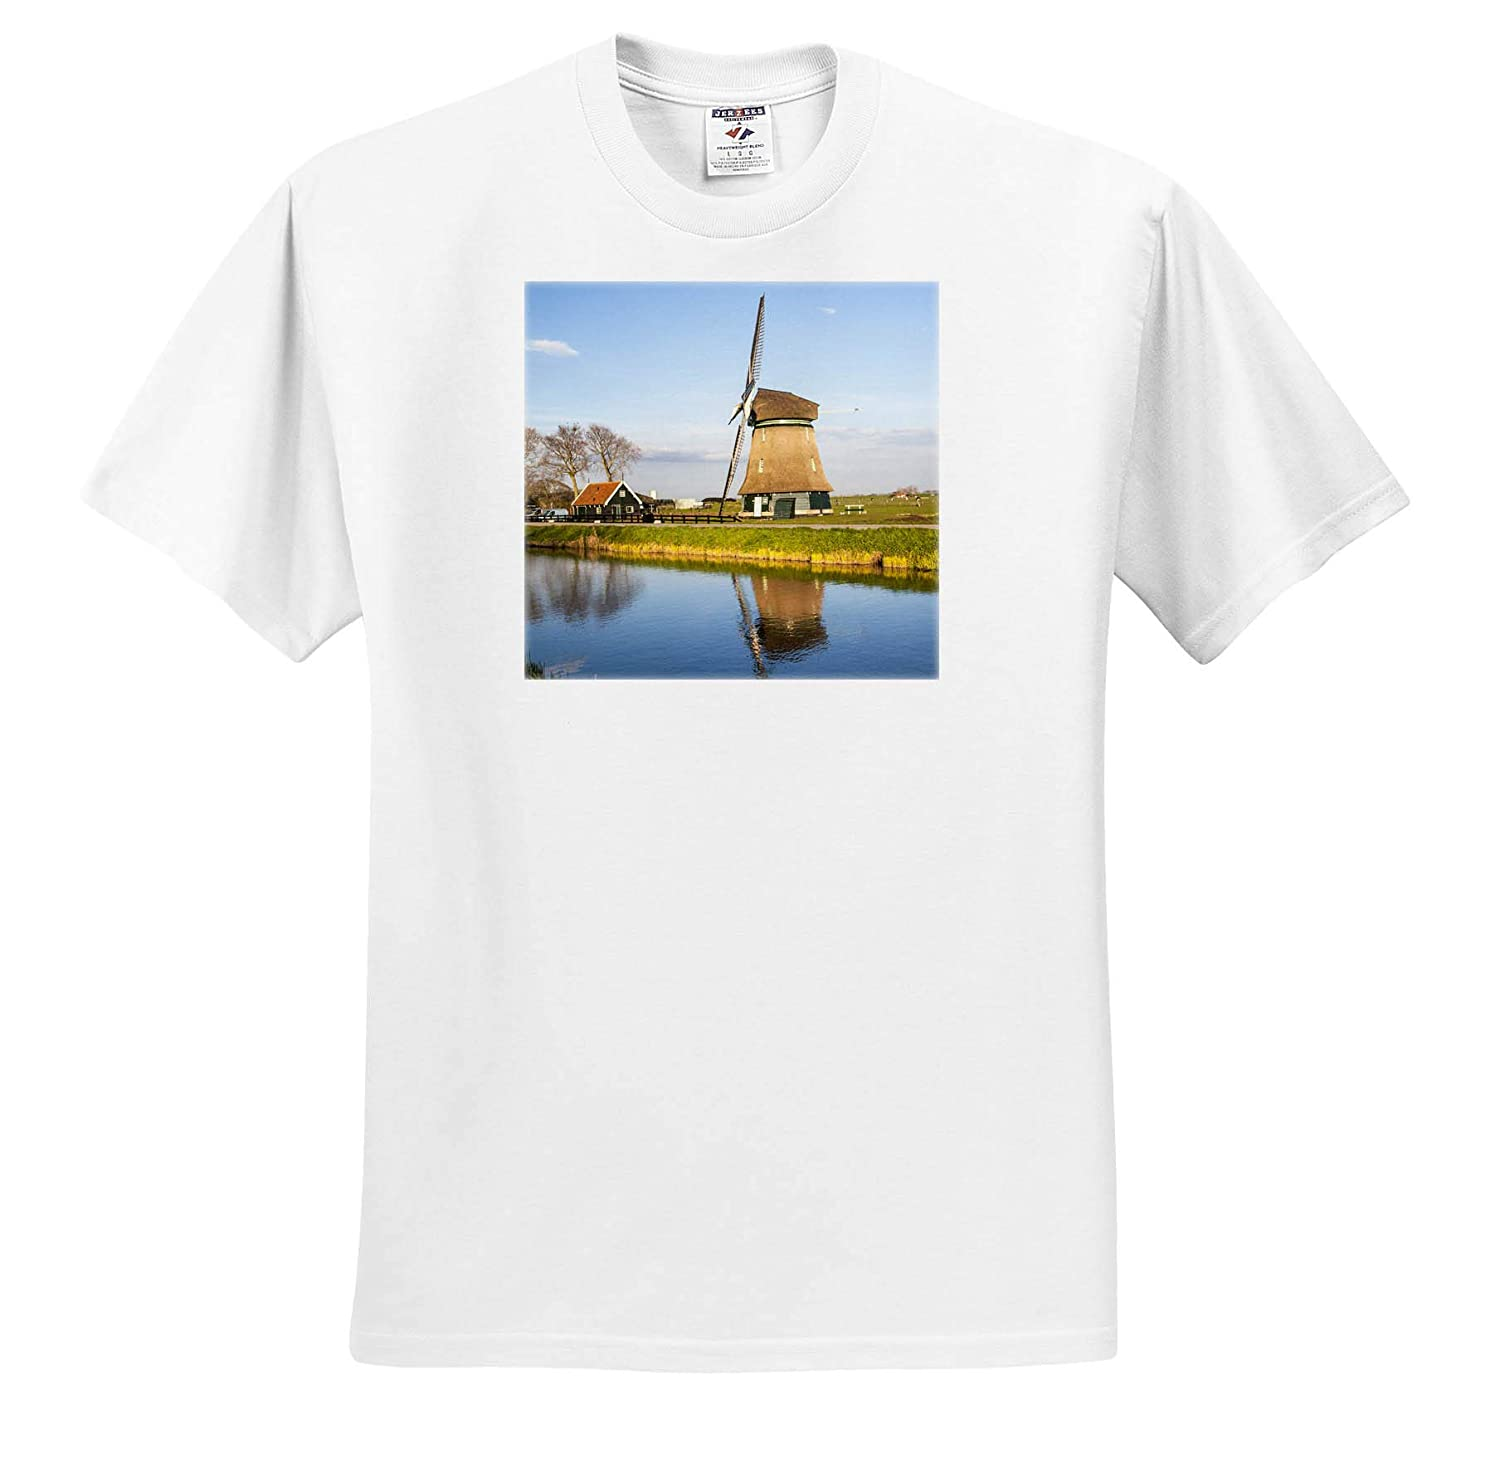 Netherlands ts/_313773 Netherlands Windmill on a Canal 3dRose Danita Delimont Lisse Adult T-Shirt XL